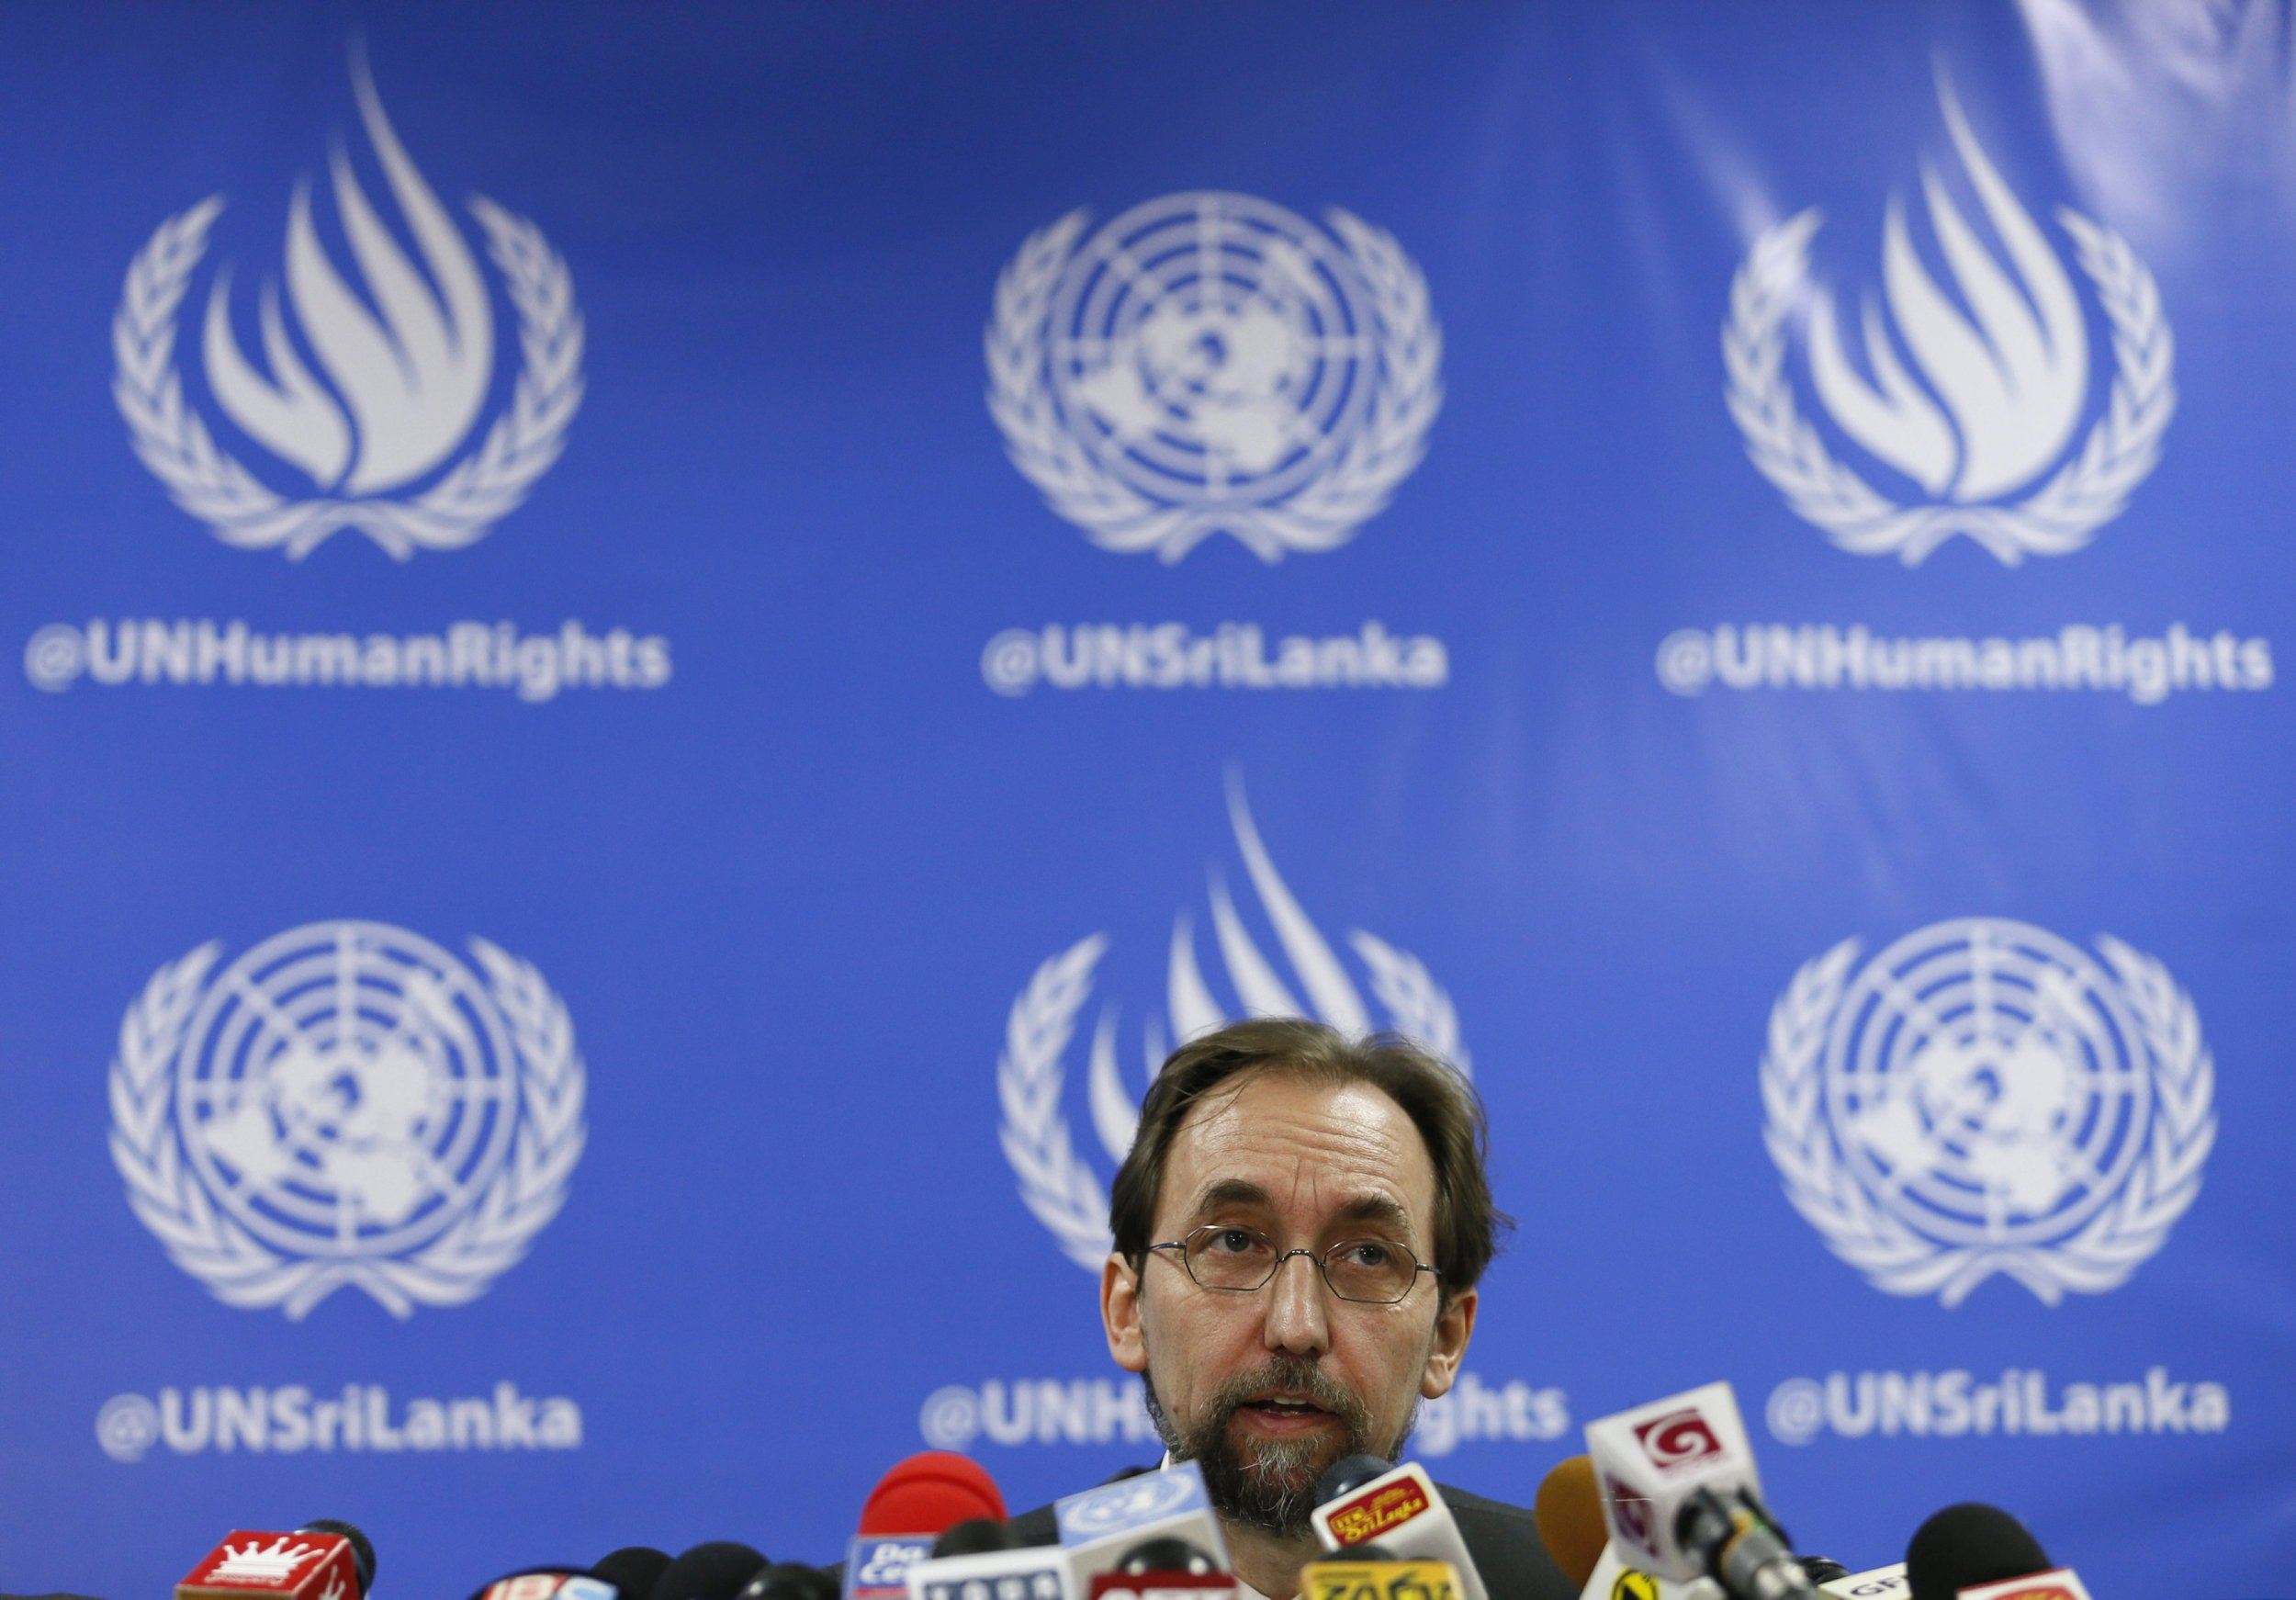 The United Nations Isn't Properly Protecting Human Rights: Amnesty